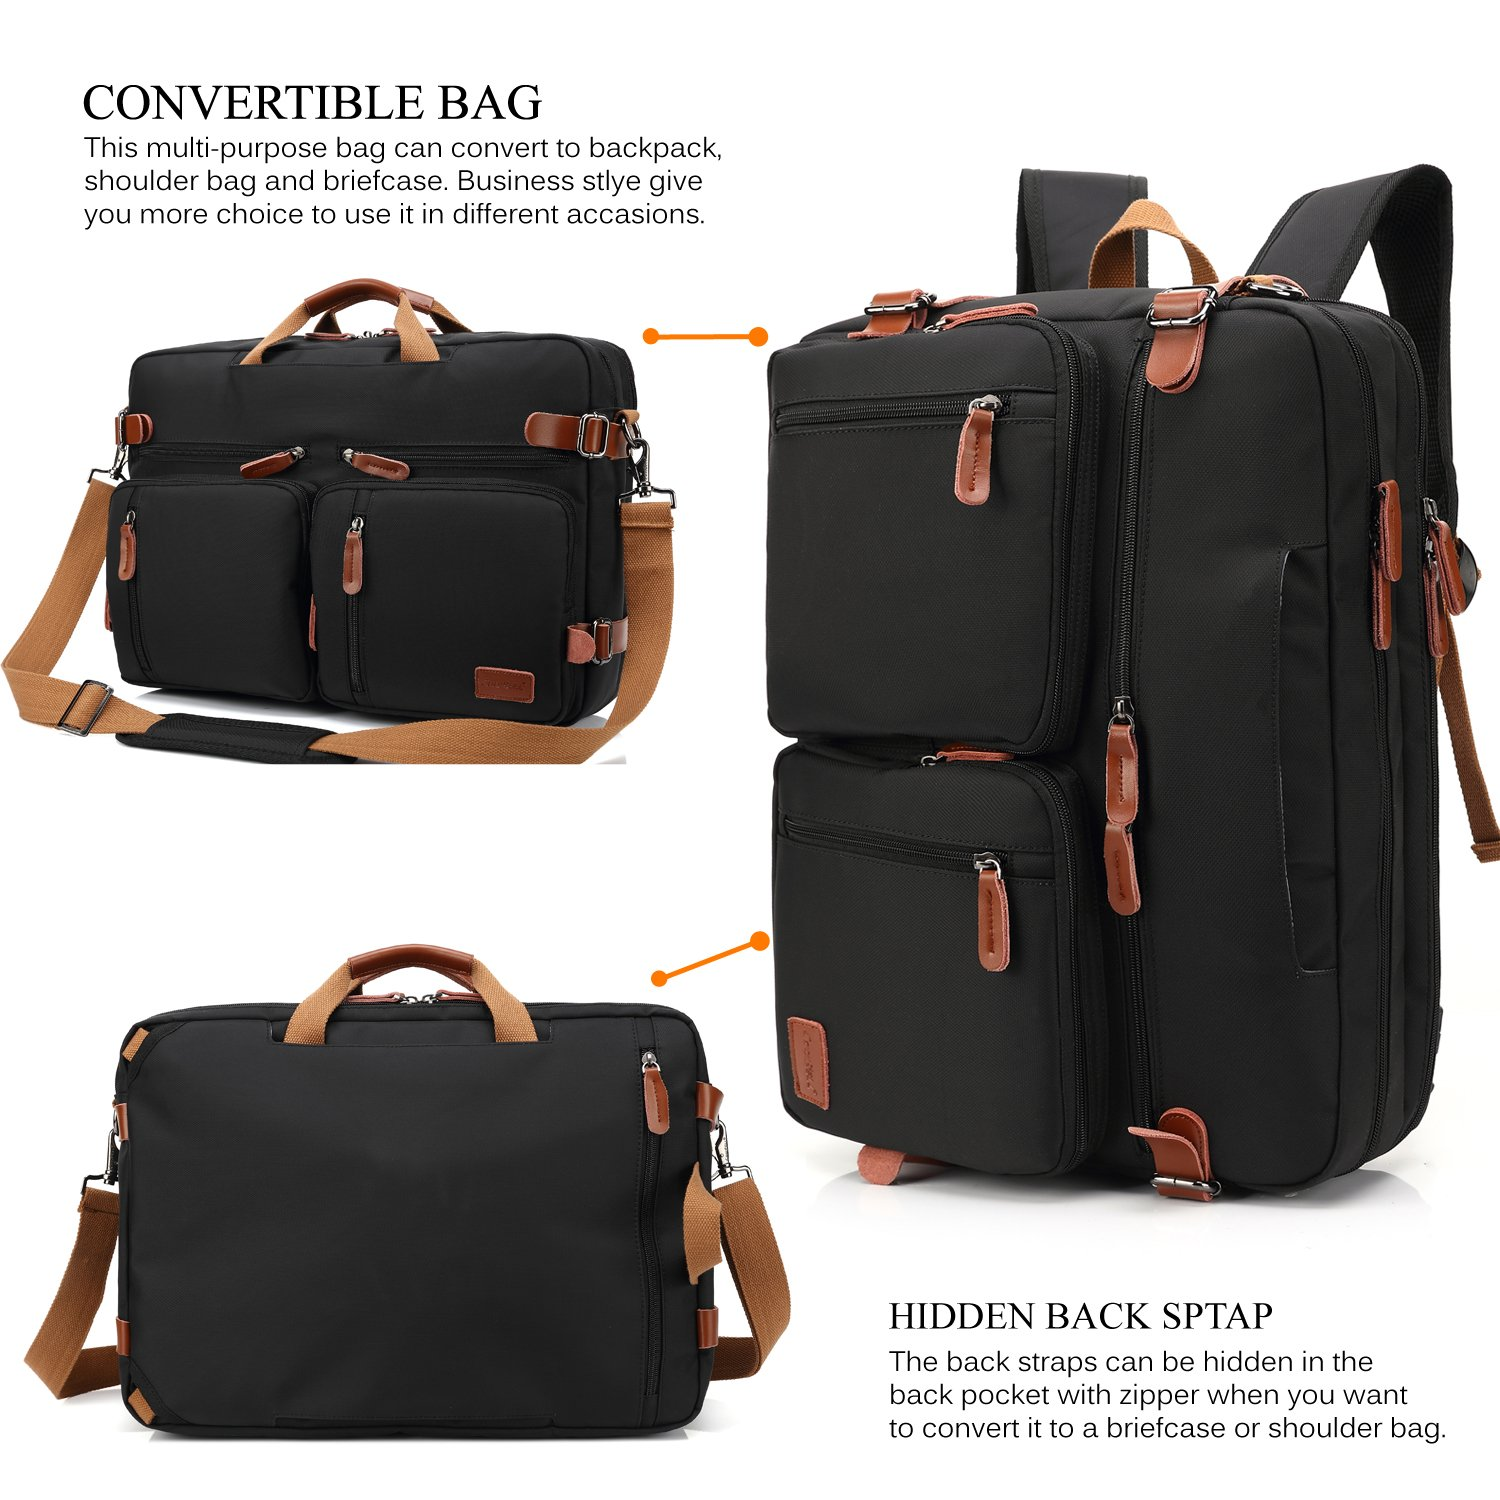 Finest Amazon.com: CoolBELL Convertible Backpack Messenger Bag Shoulder  GZ76